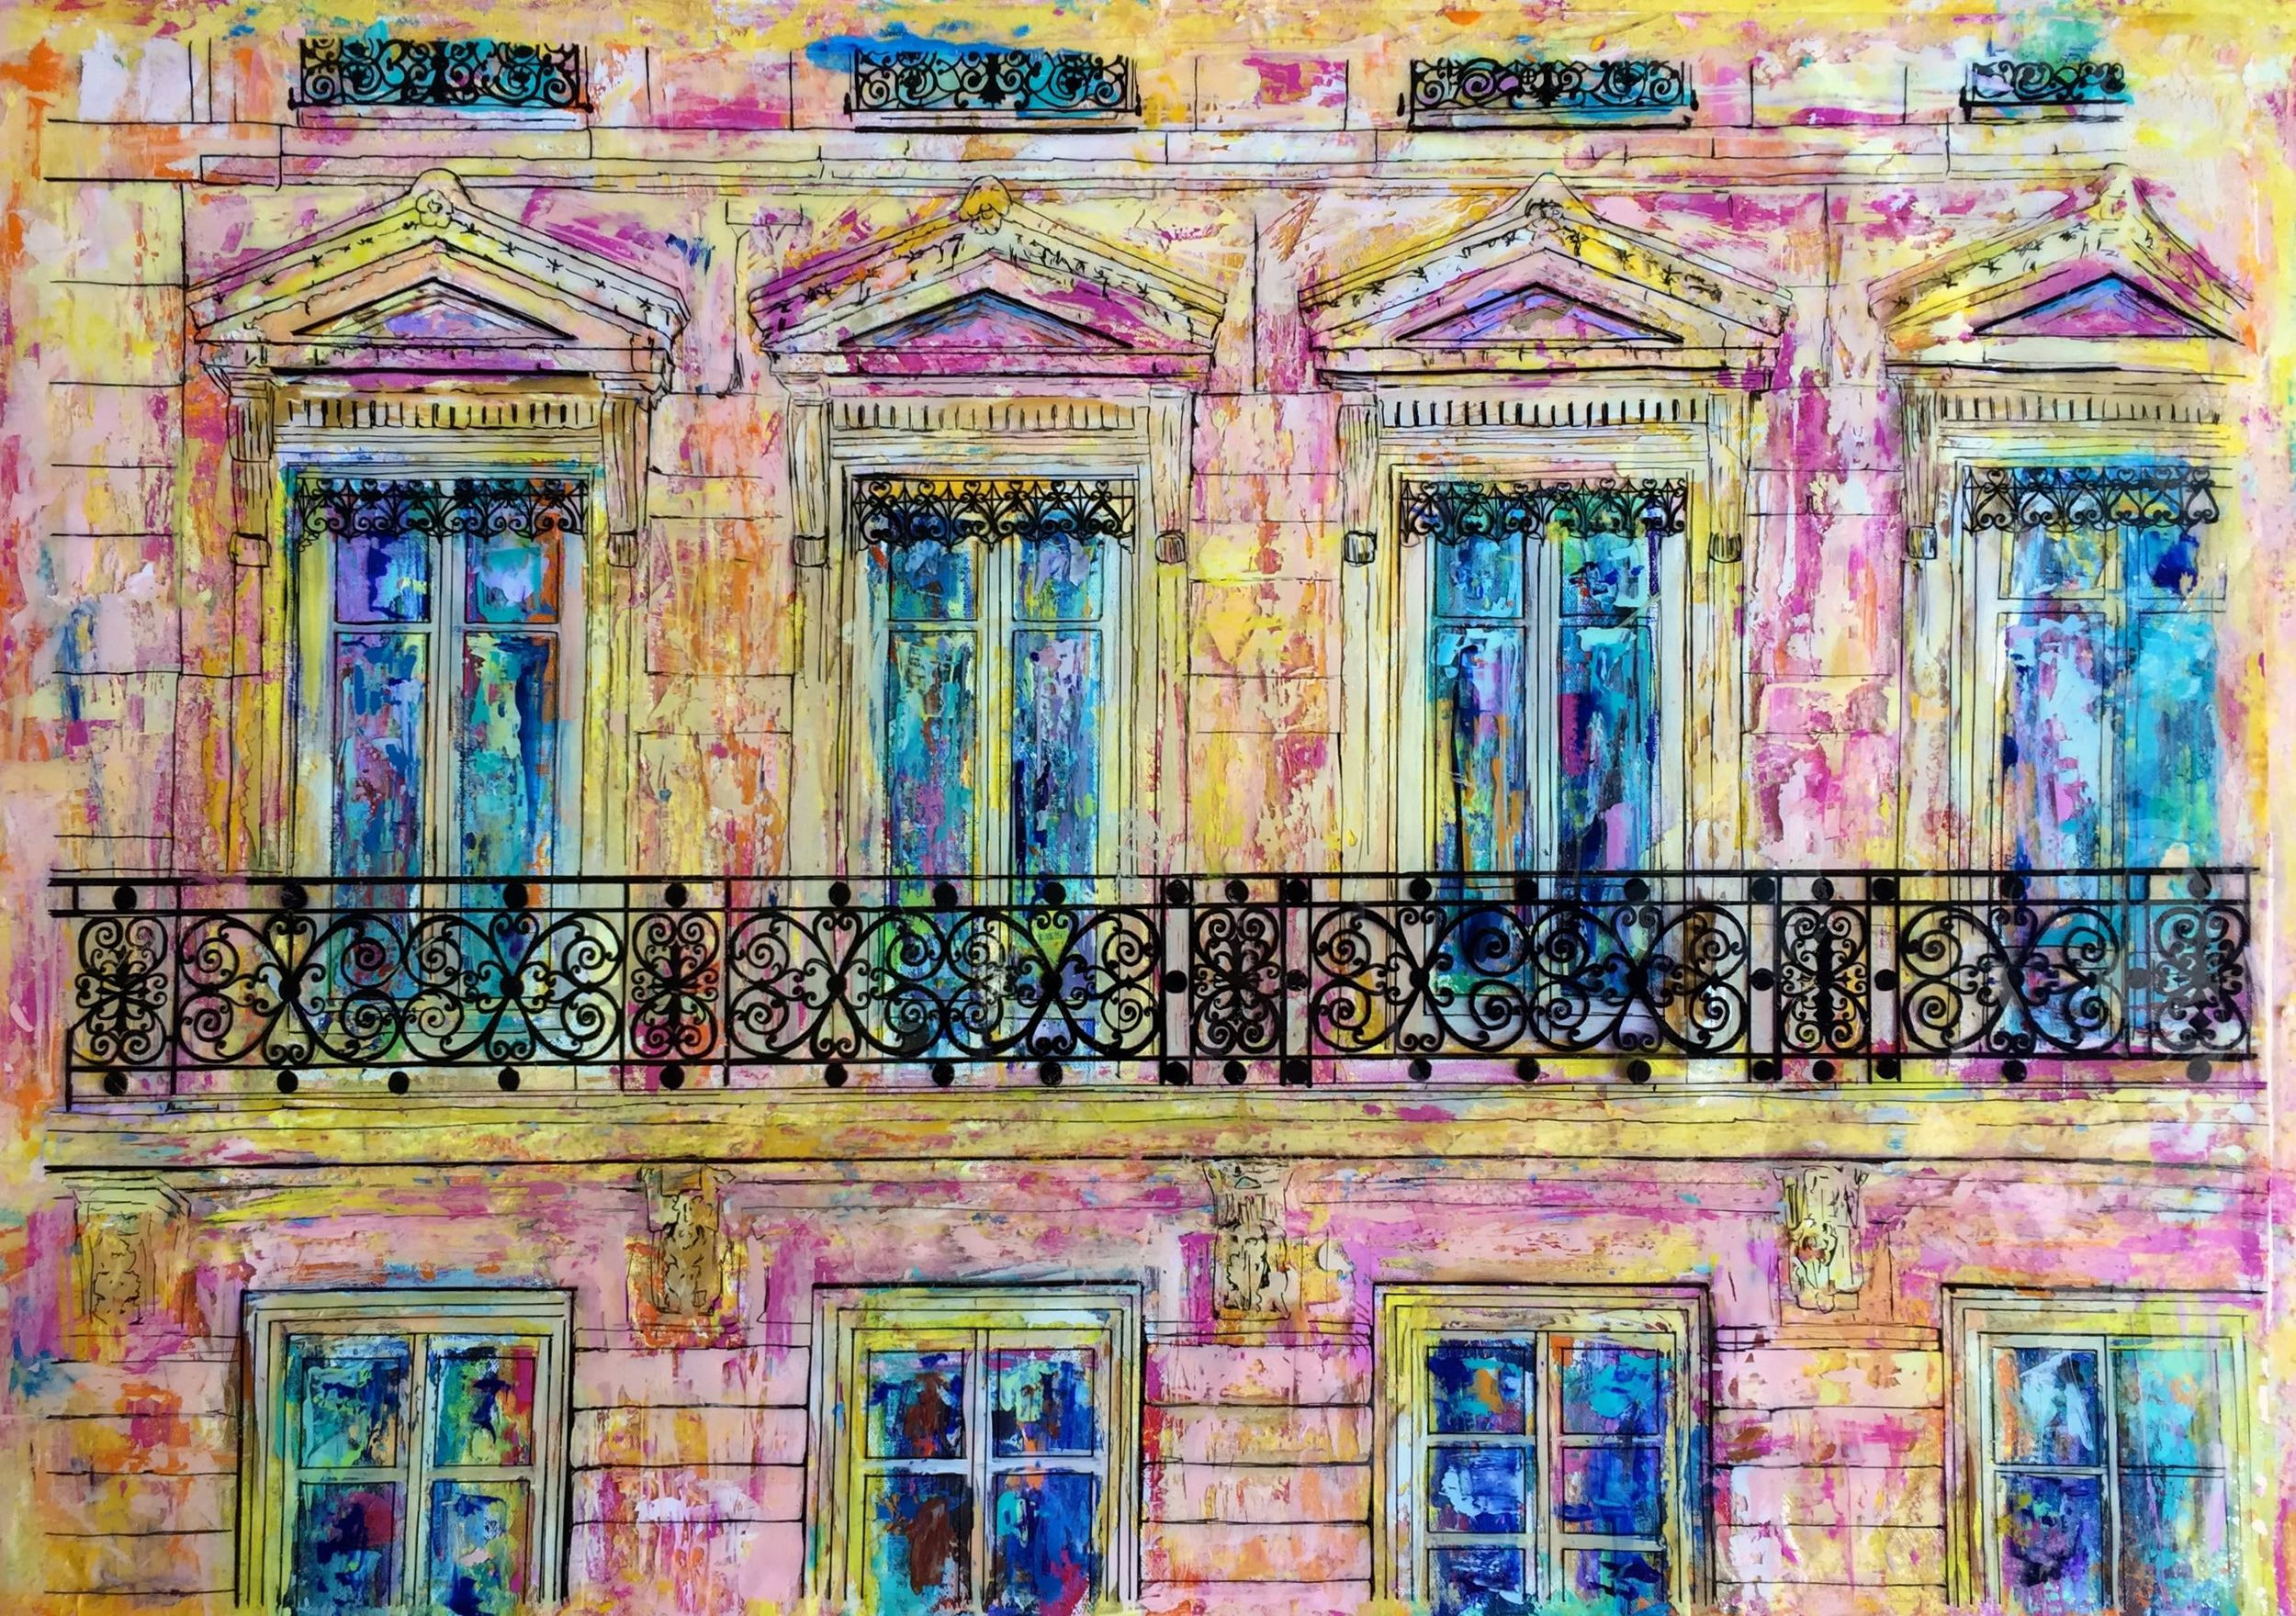 """PARIS BALCONIES   24 x 36""""  Acrylic, acetate, ink, and epoxy resin on canvas  PRINTS AVAILABLE / ORIGINAL SOLD"""